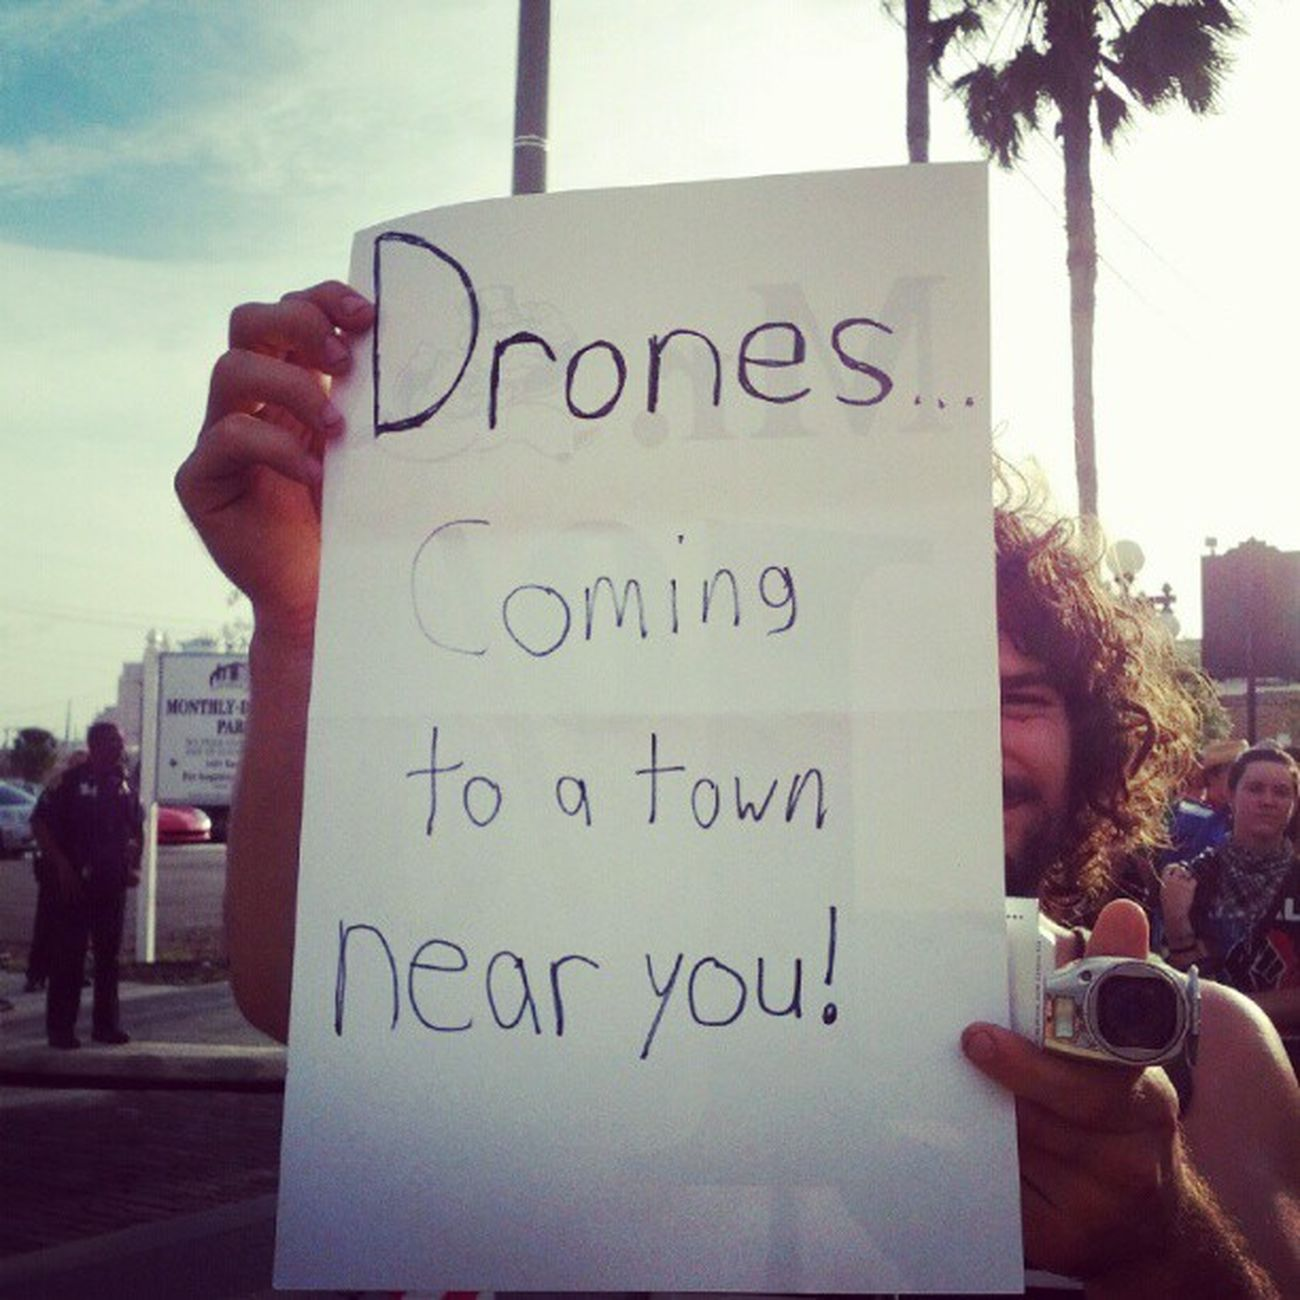 Drones coming to a town near you Yborcity Tampa Resistrnc